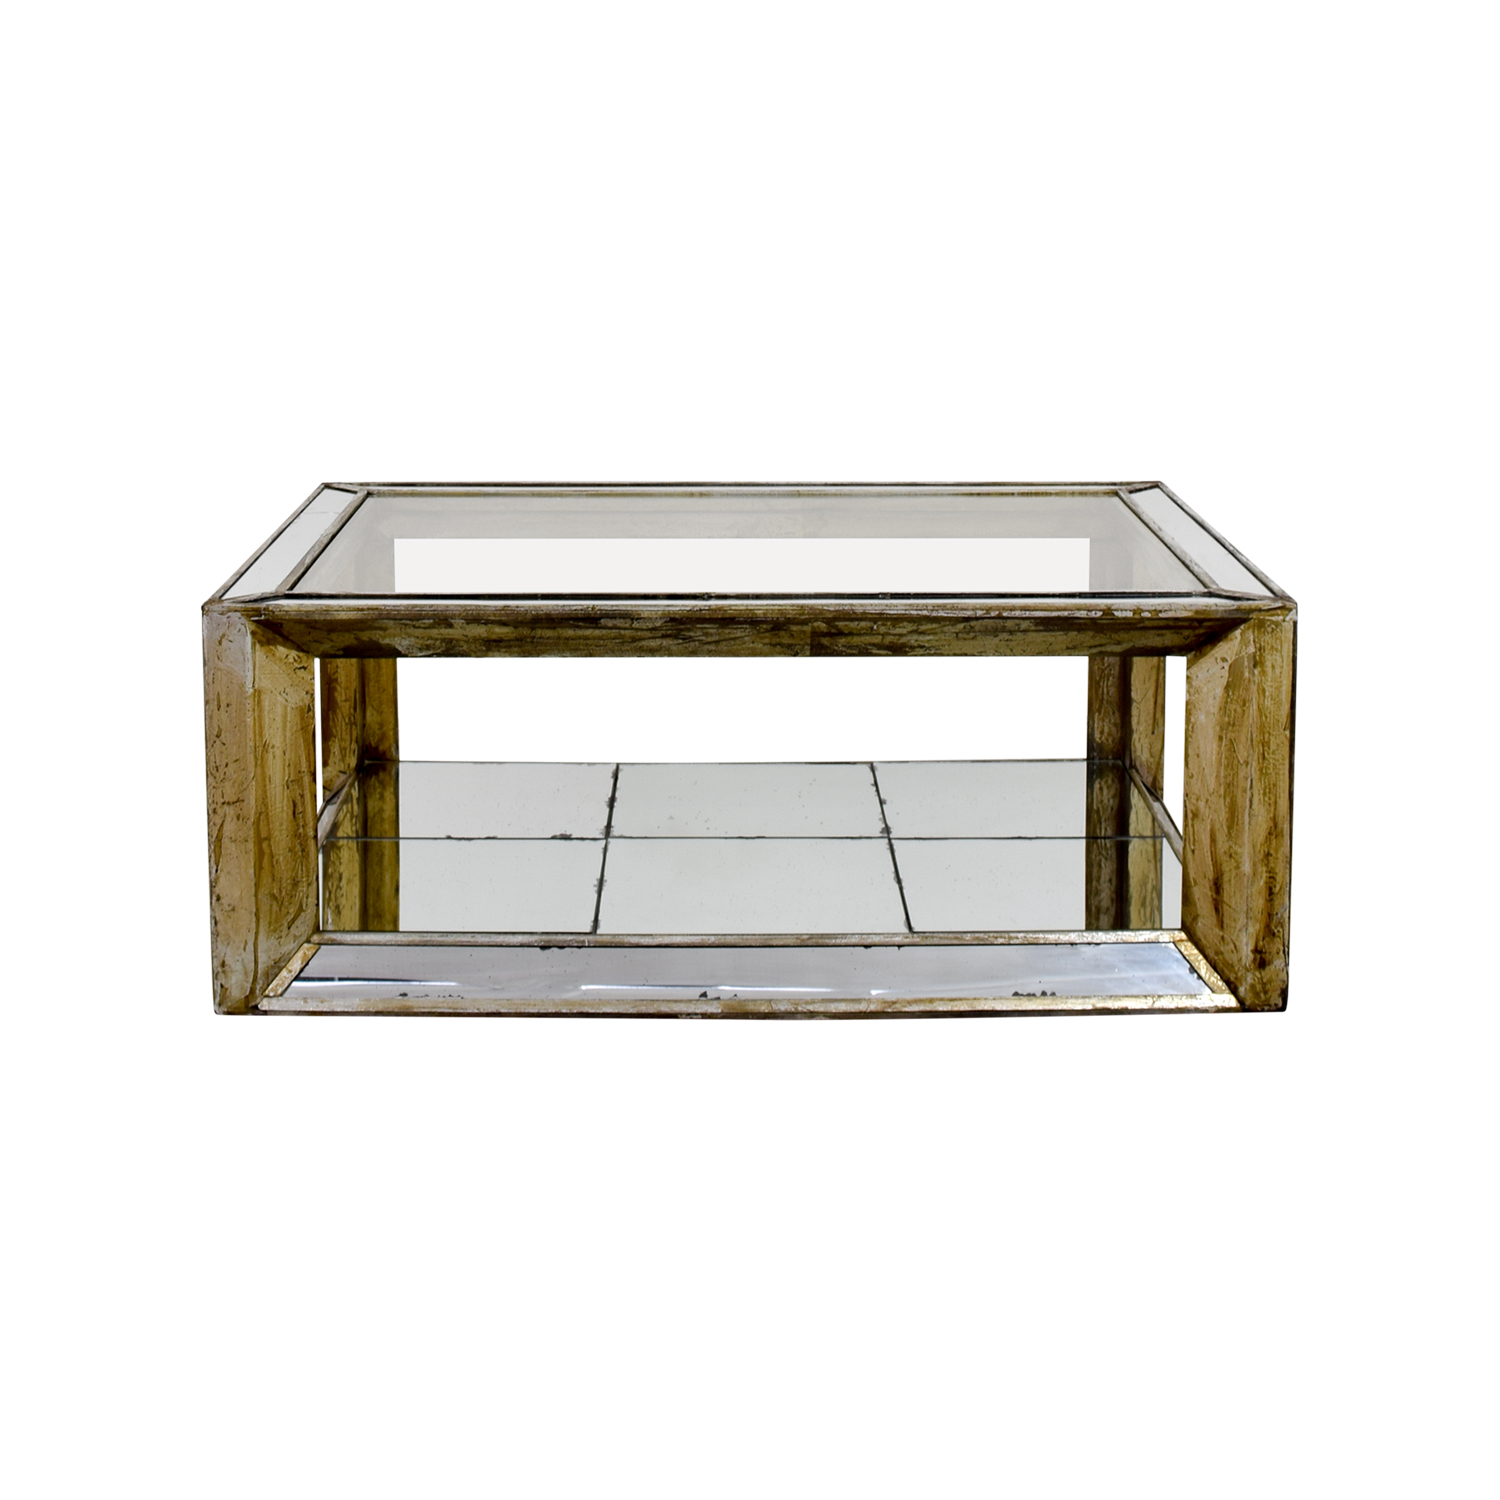 Houston Furniture Houston Furniture Mirror and Glass Coffee Table used